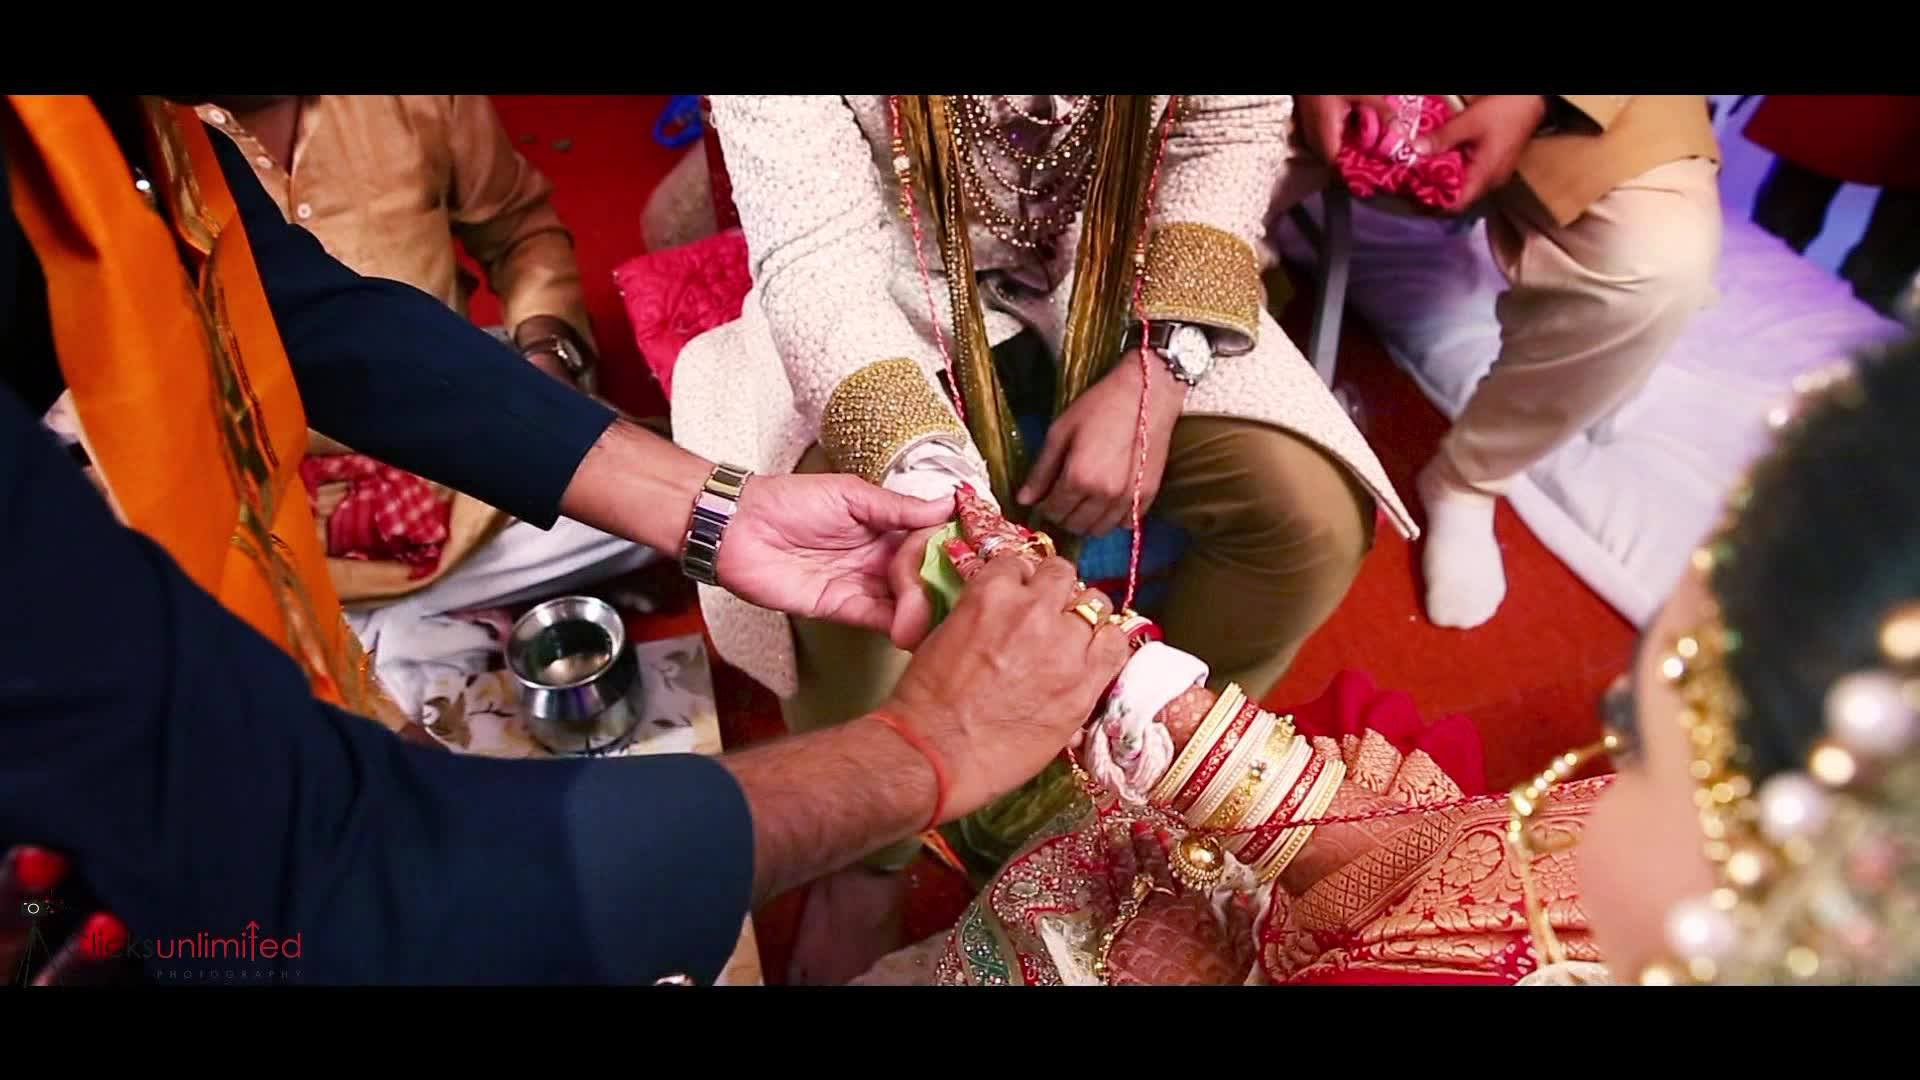 Marriages are made in heaven and Jatin Gohil Saloni Modi are proof of that! <3 #Clicksunlimited